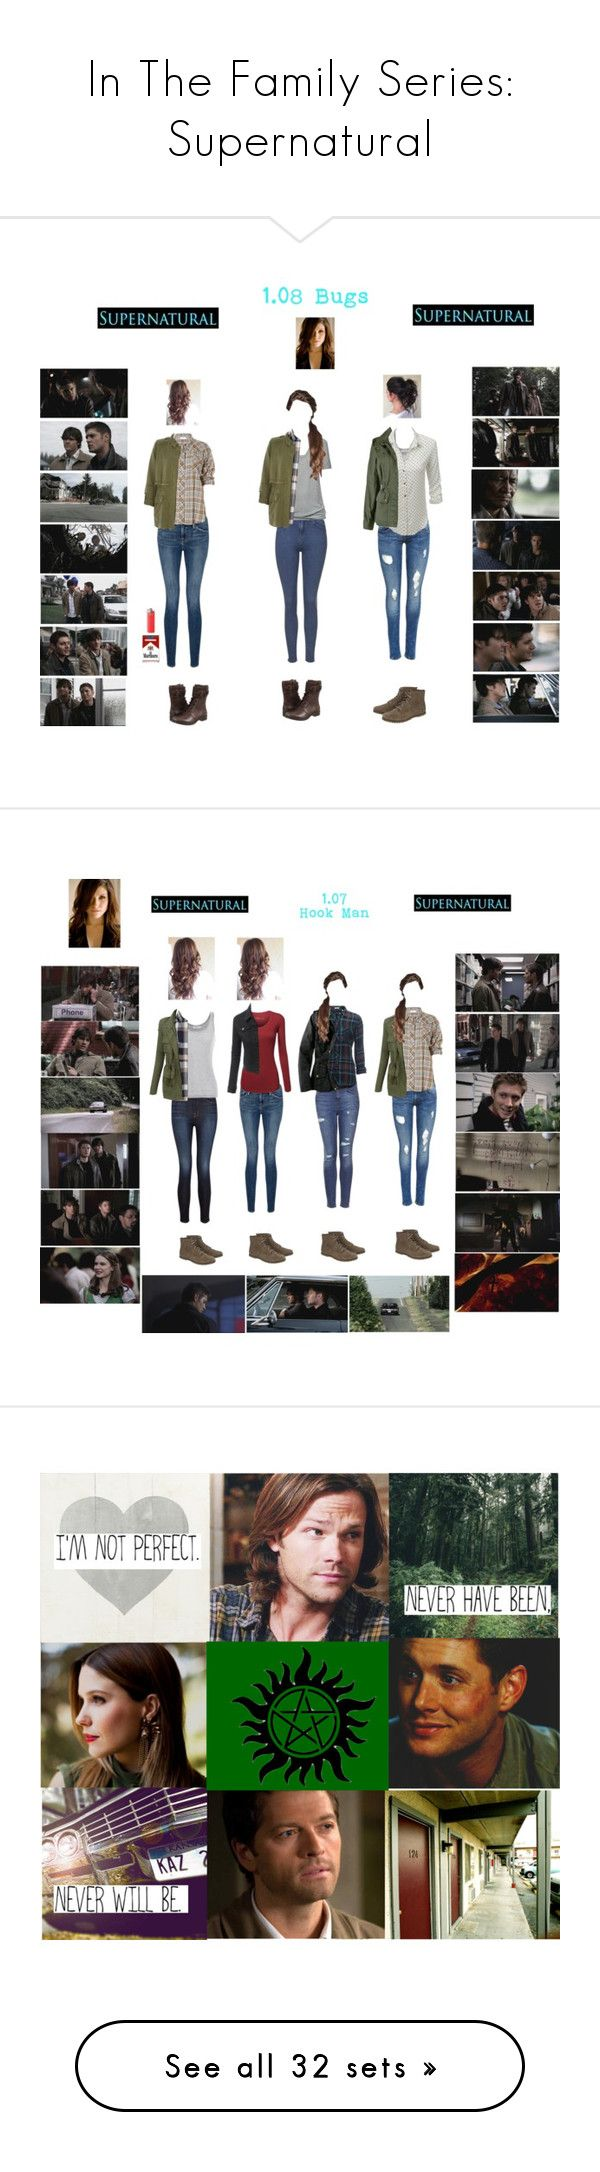 """""""In The Family Series: Supernatural"""" by chell-p ❤ liked on Polyvore featuring supernatural, wattpad, fanfiction, tvshow, art, winchester, inthefamily, harrietwinchester, OC and GenderSwap"""